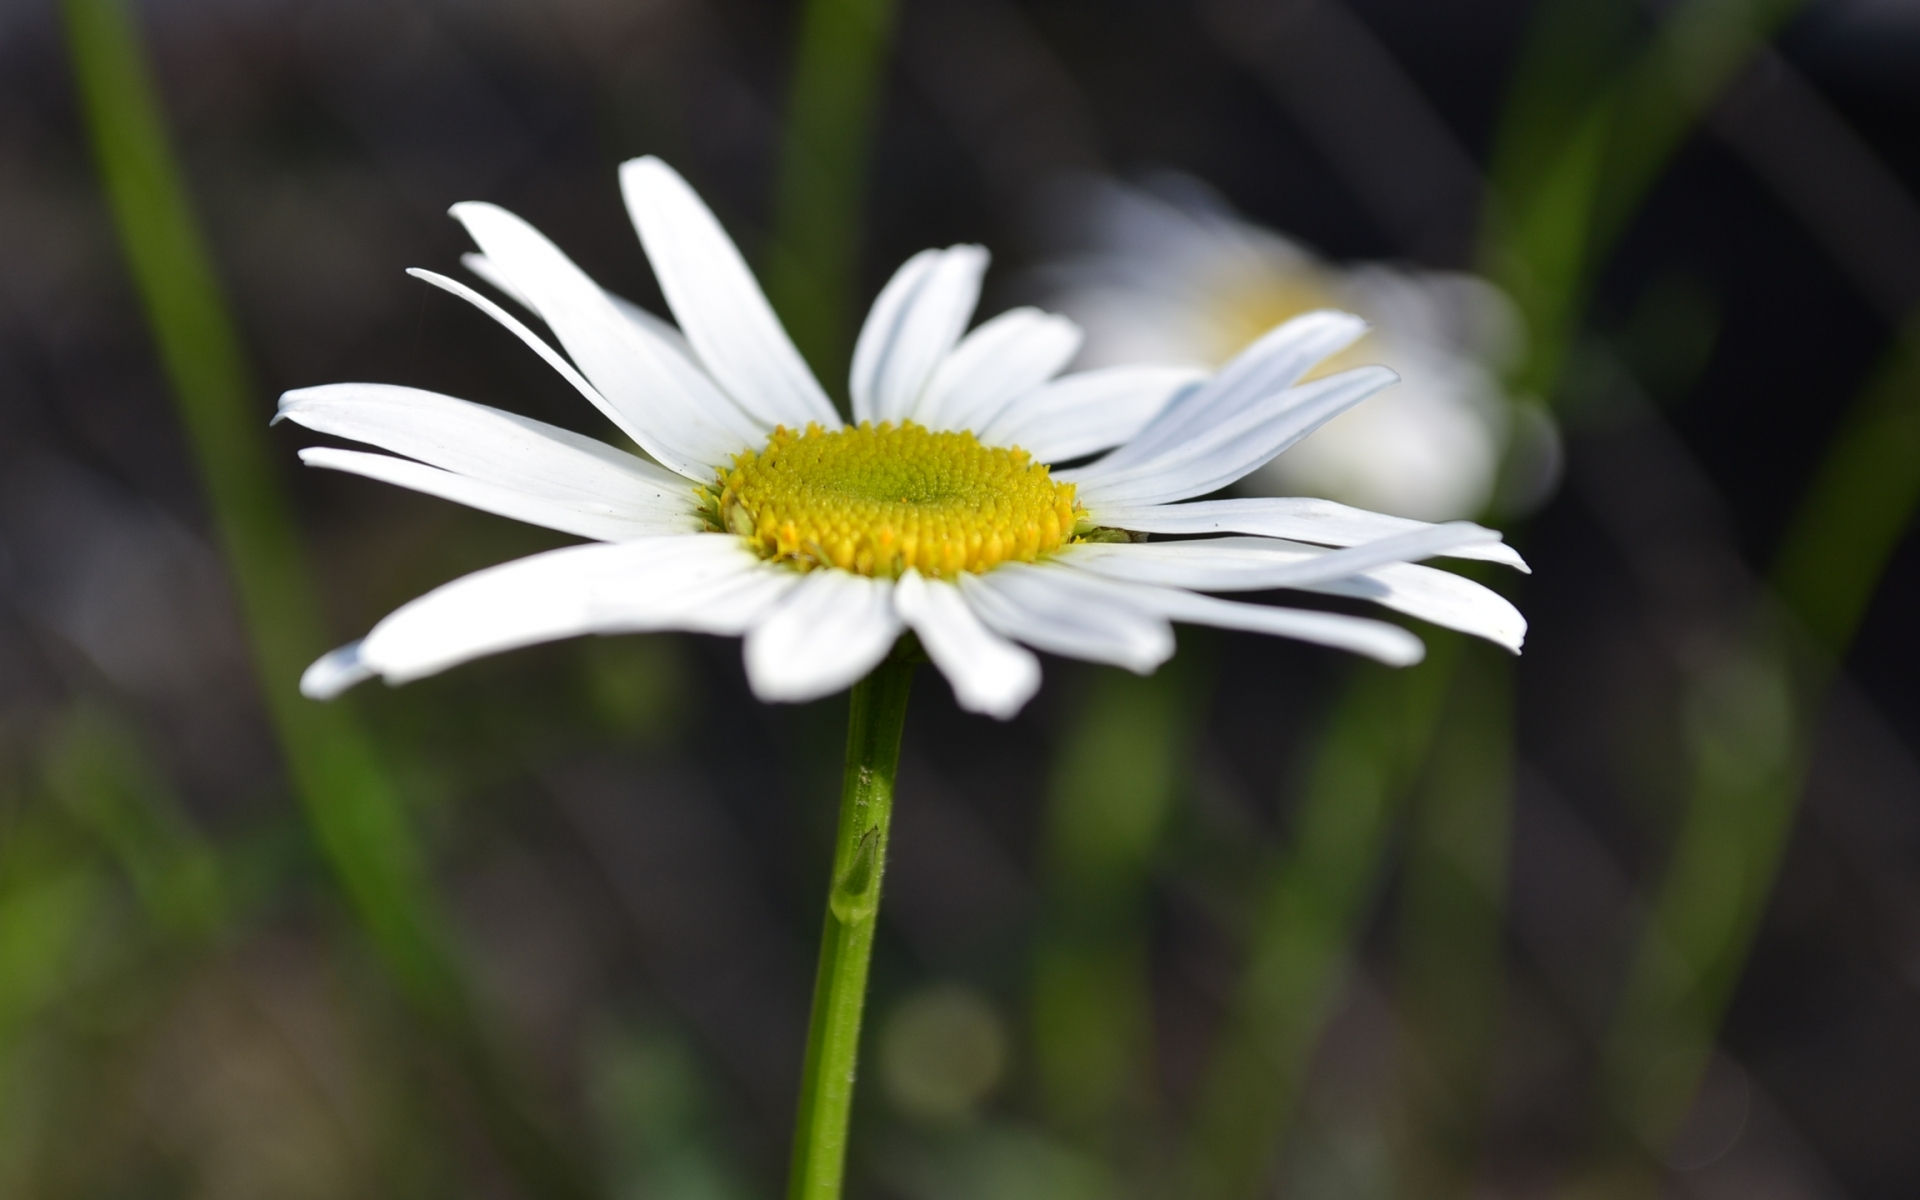 44344 download wallpaper Plants, Flowers, Camomile screensavers and pictures for free